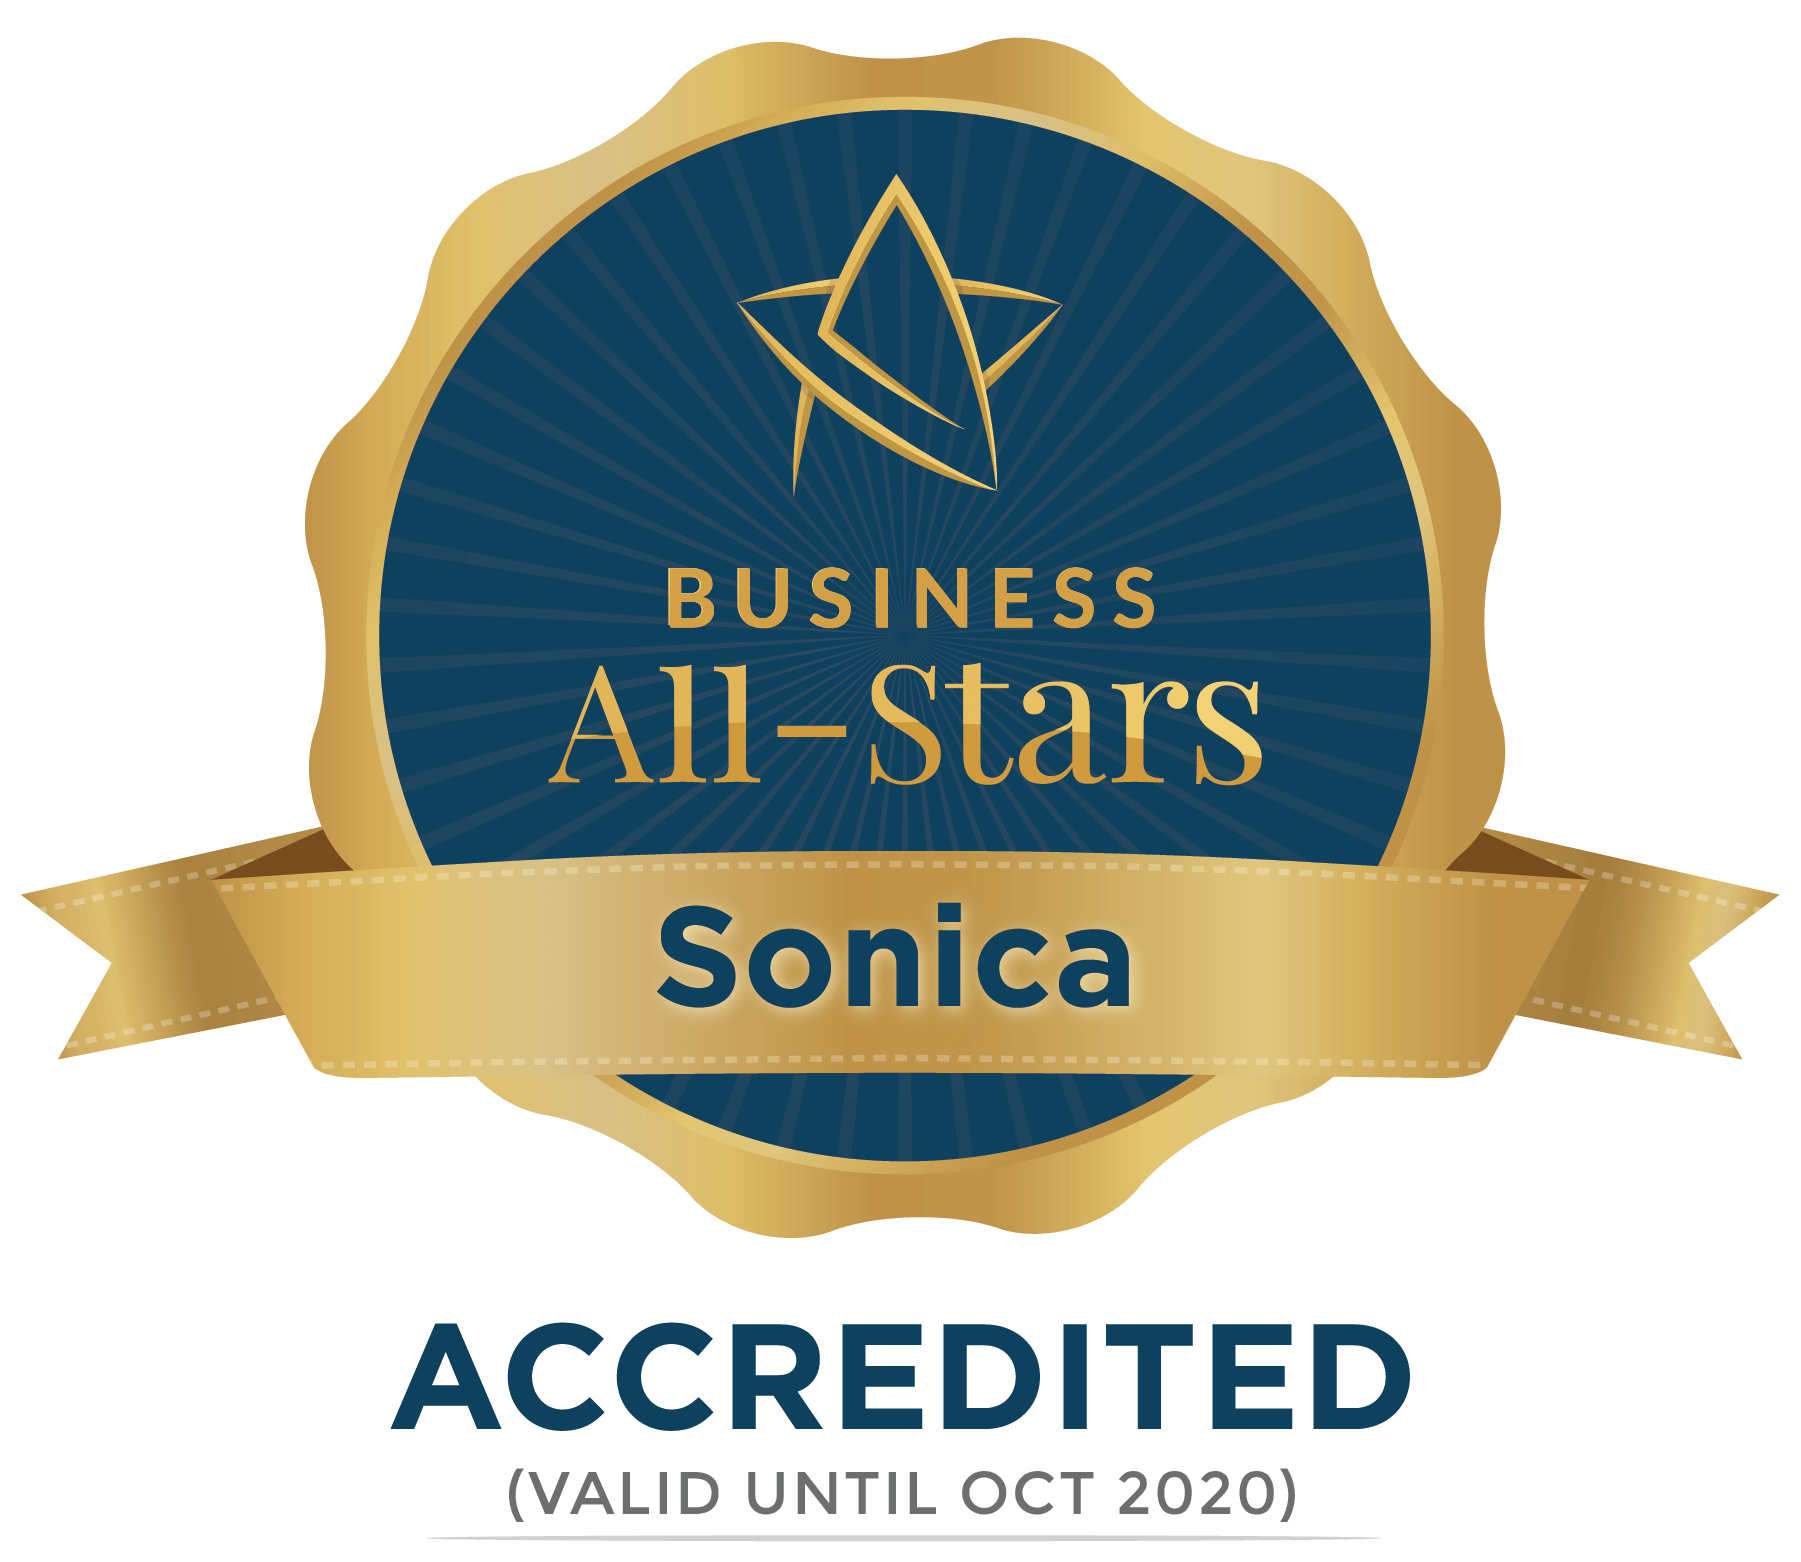 Sonica - Business All-Stars Accreditation